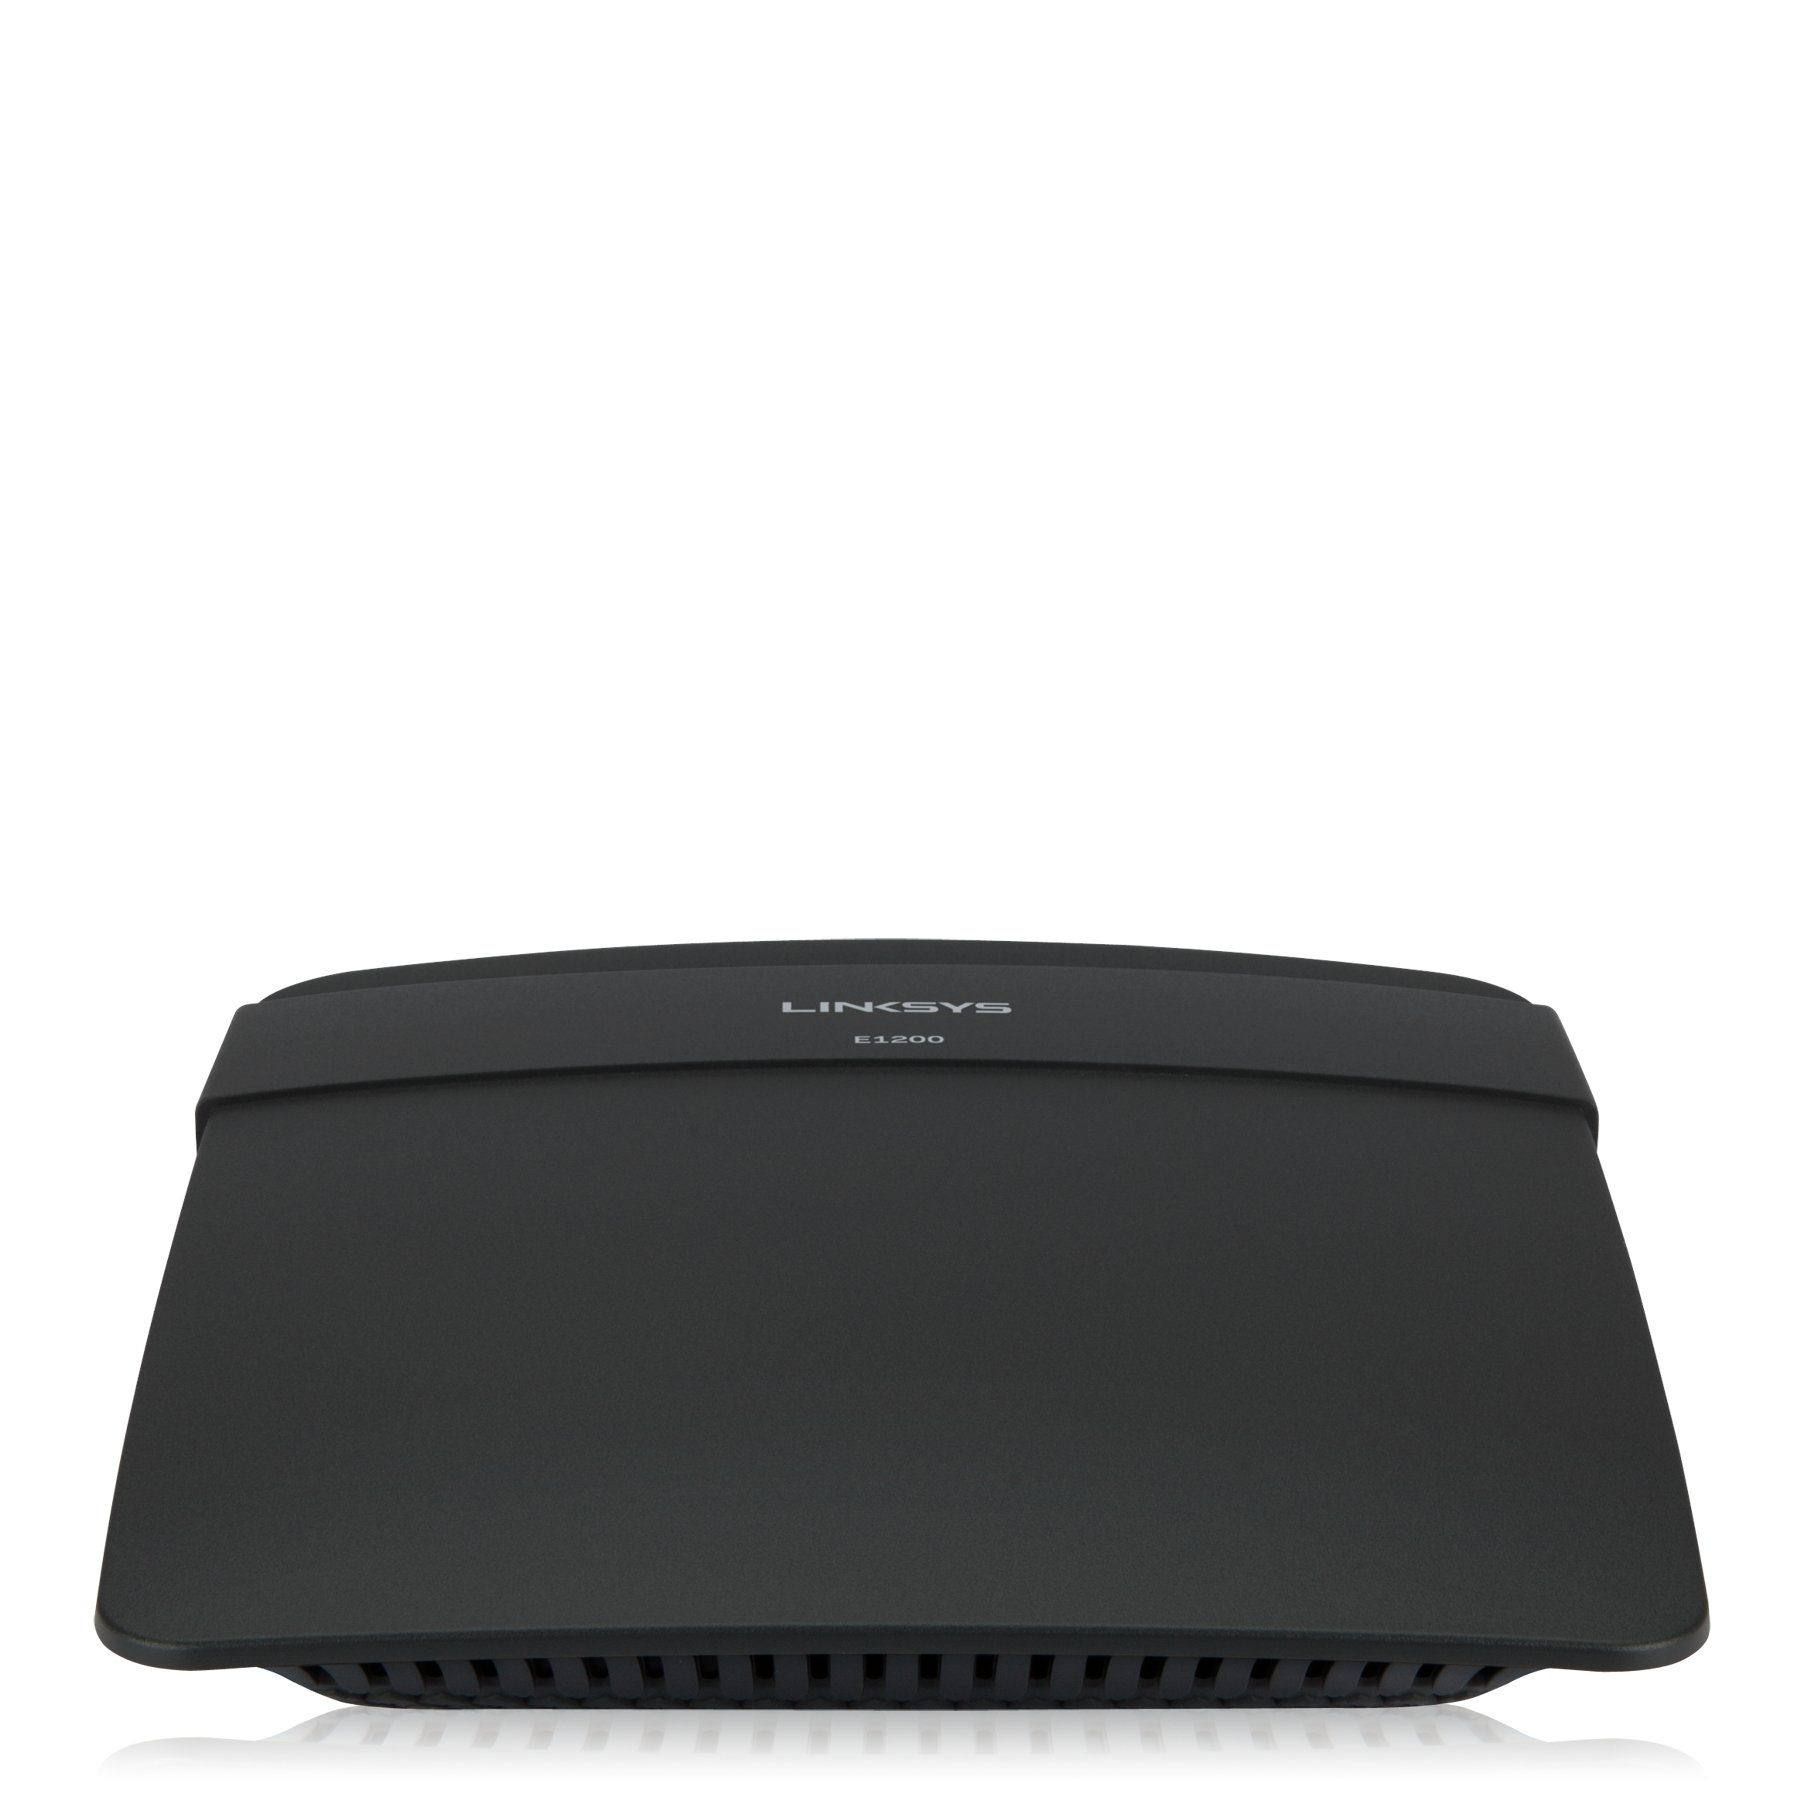 Linksys E1200 (N300) Wireless Router by Linksys